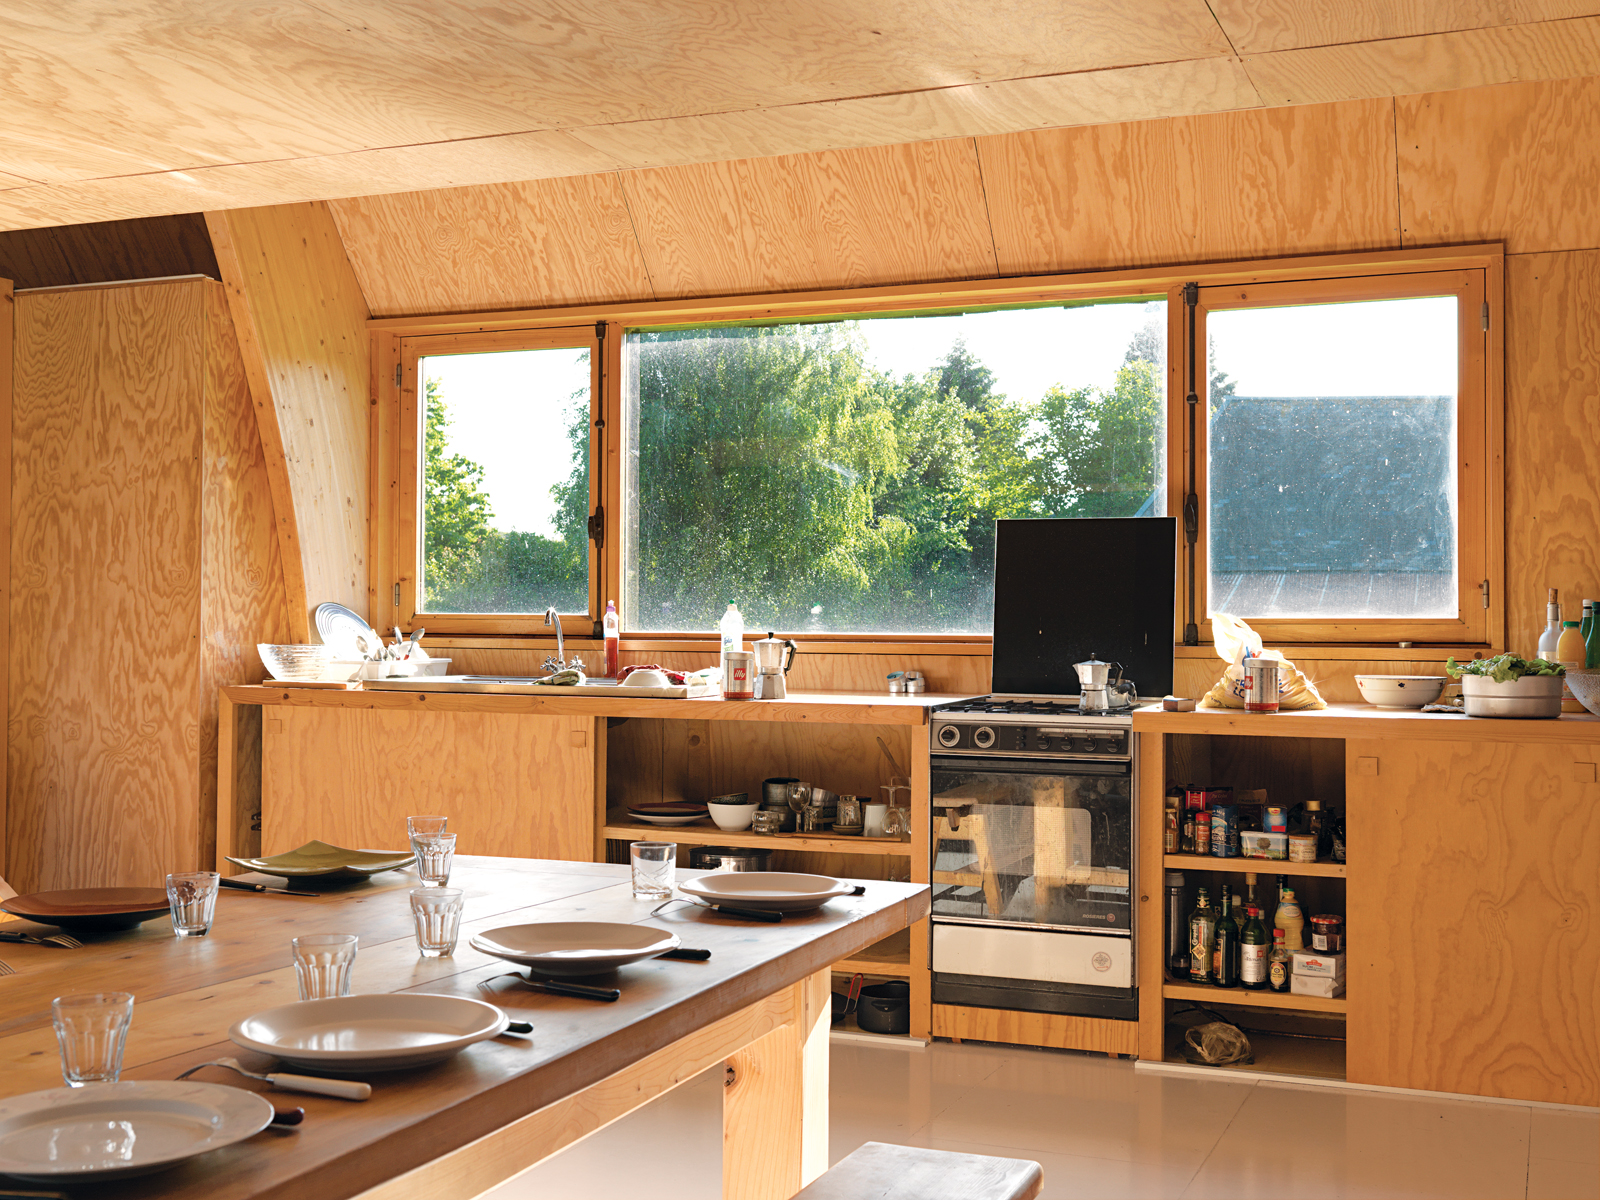 """In his kitchen built on the cheap, Barache installed appliances donated by a few architectural Good Samaritans. """"I don't even remember where the sink is from,"""" he says. Two built-in sliding-door cabinets house the kitchen basics, and the custom-built dini"""